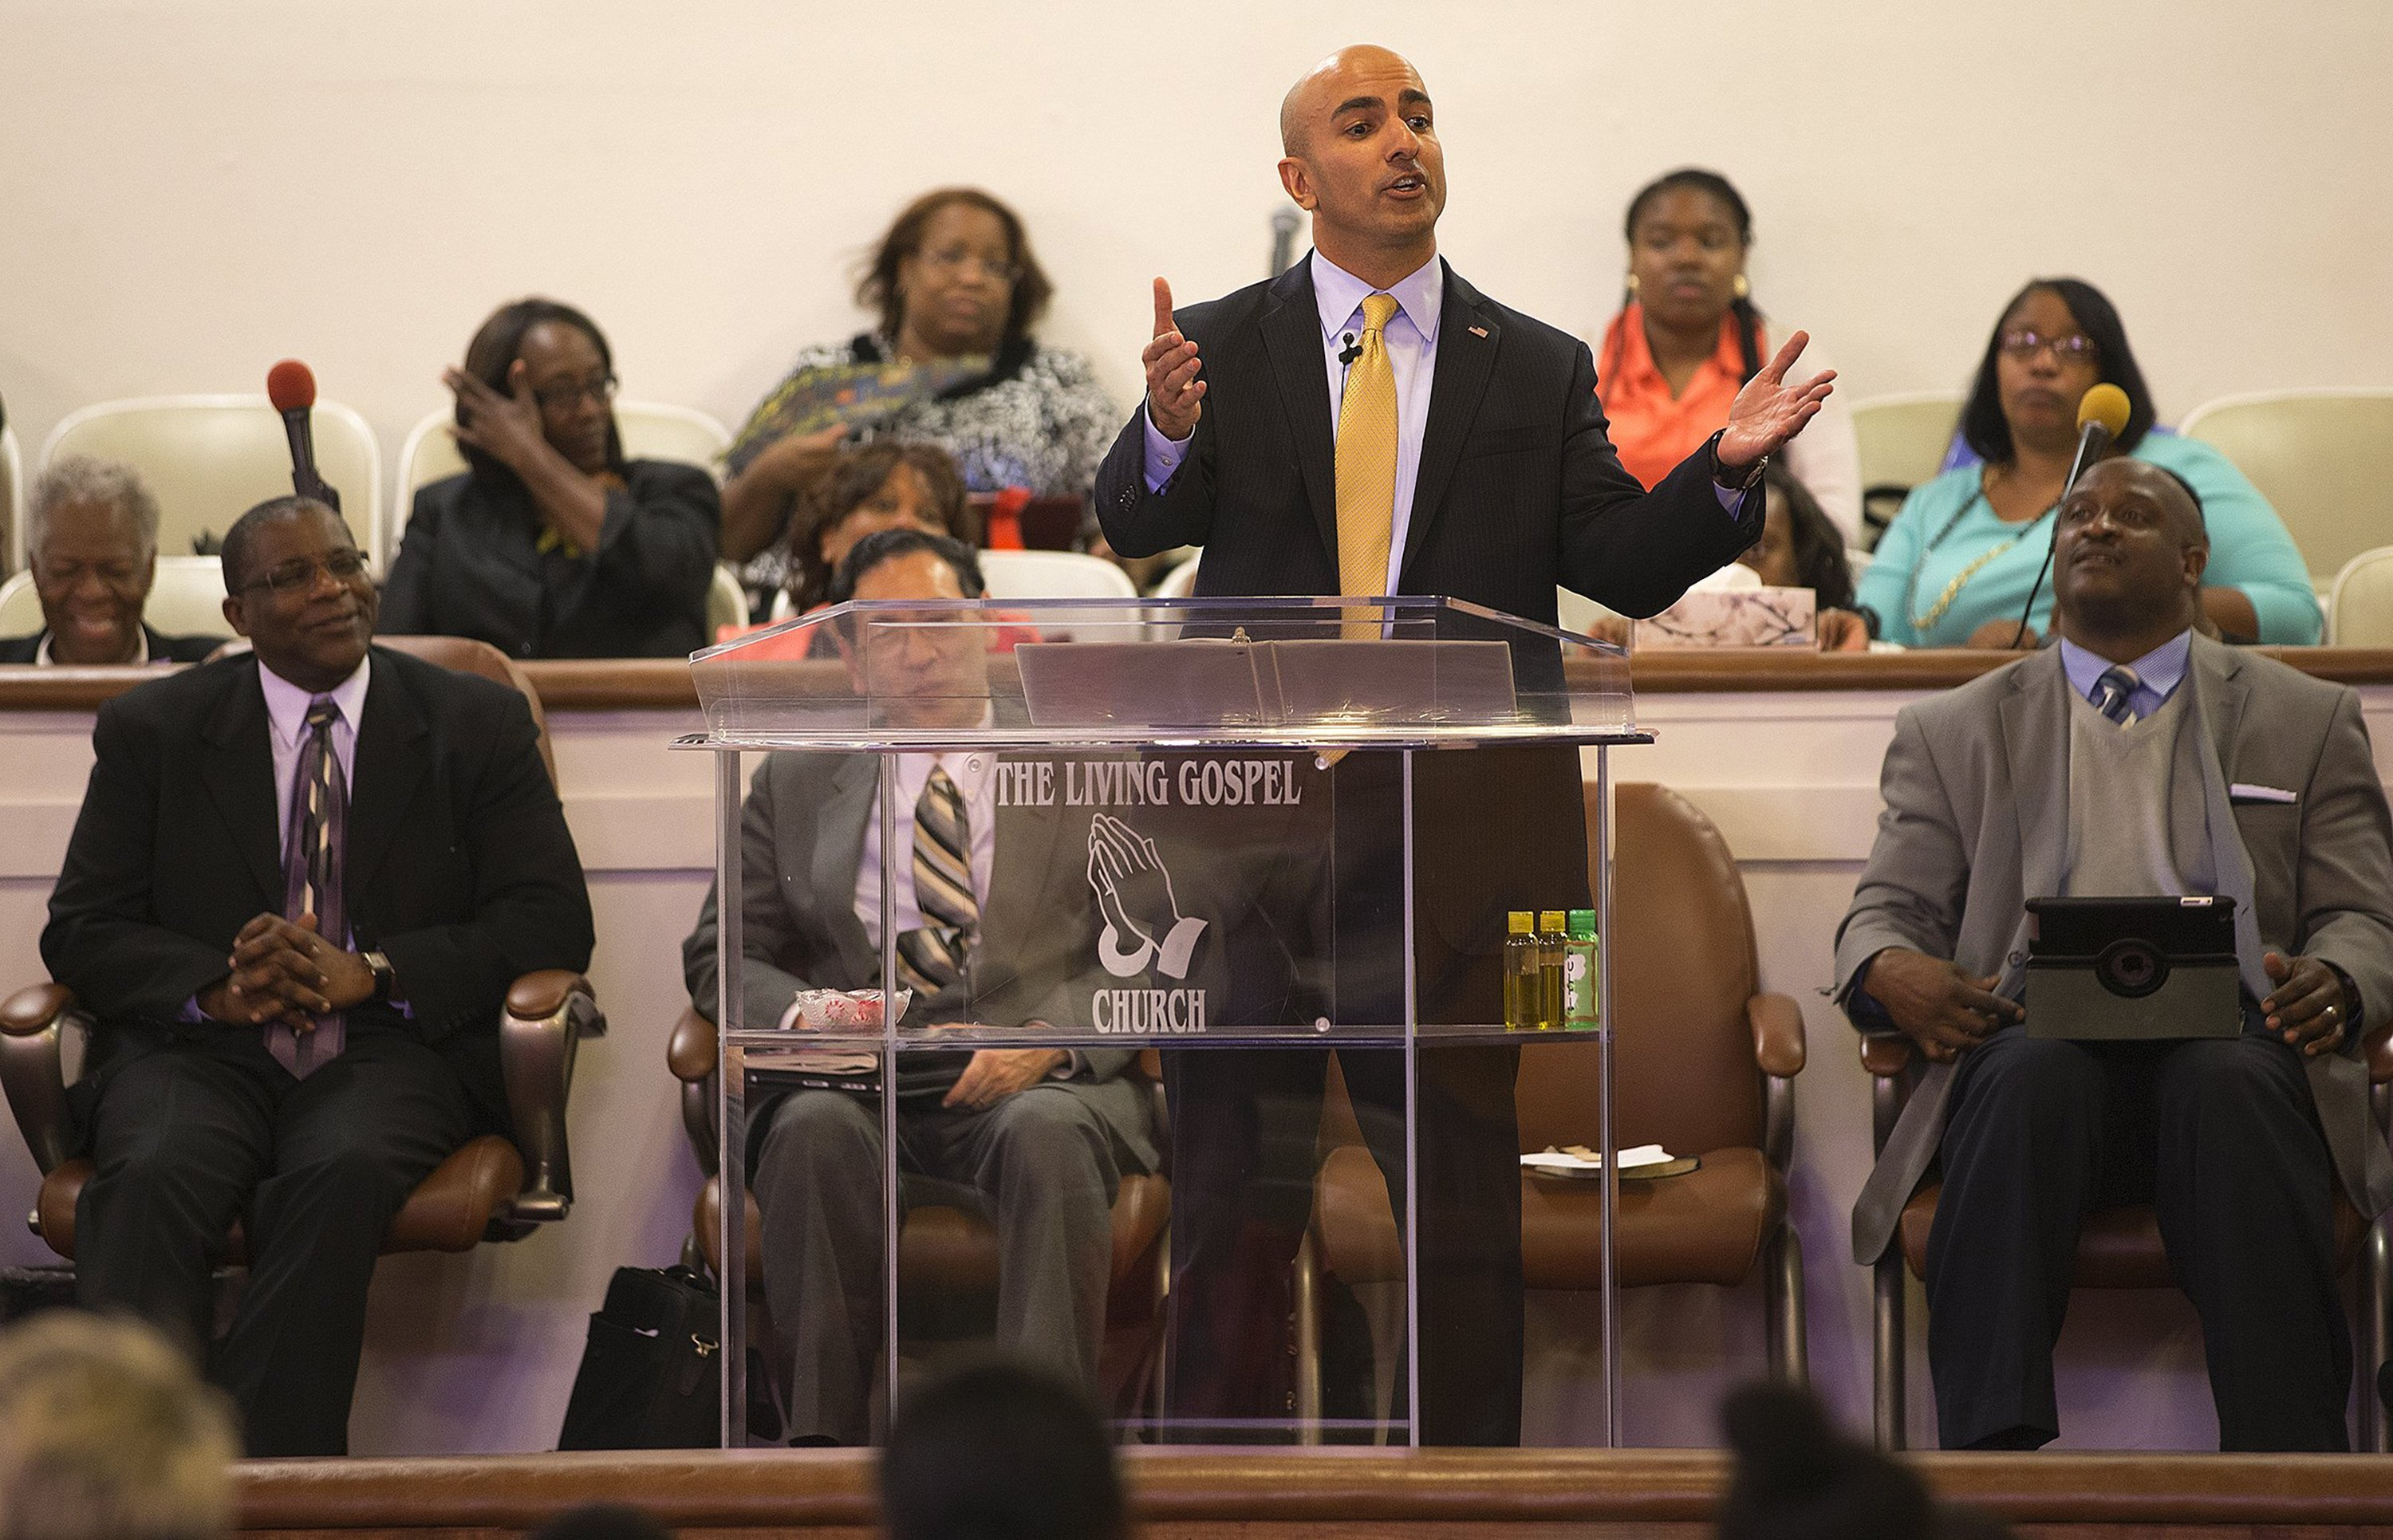 California Republican gubernatorial candidate Neel Kashkari speaks at the Living Gospel Church during Sunday service on June 15, 2014, in Los Angeles. (Gina Ferazzi/Los Angeles Times/MCT)